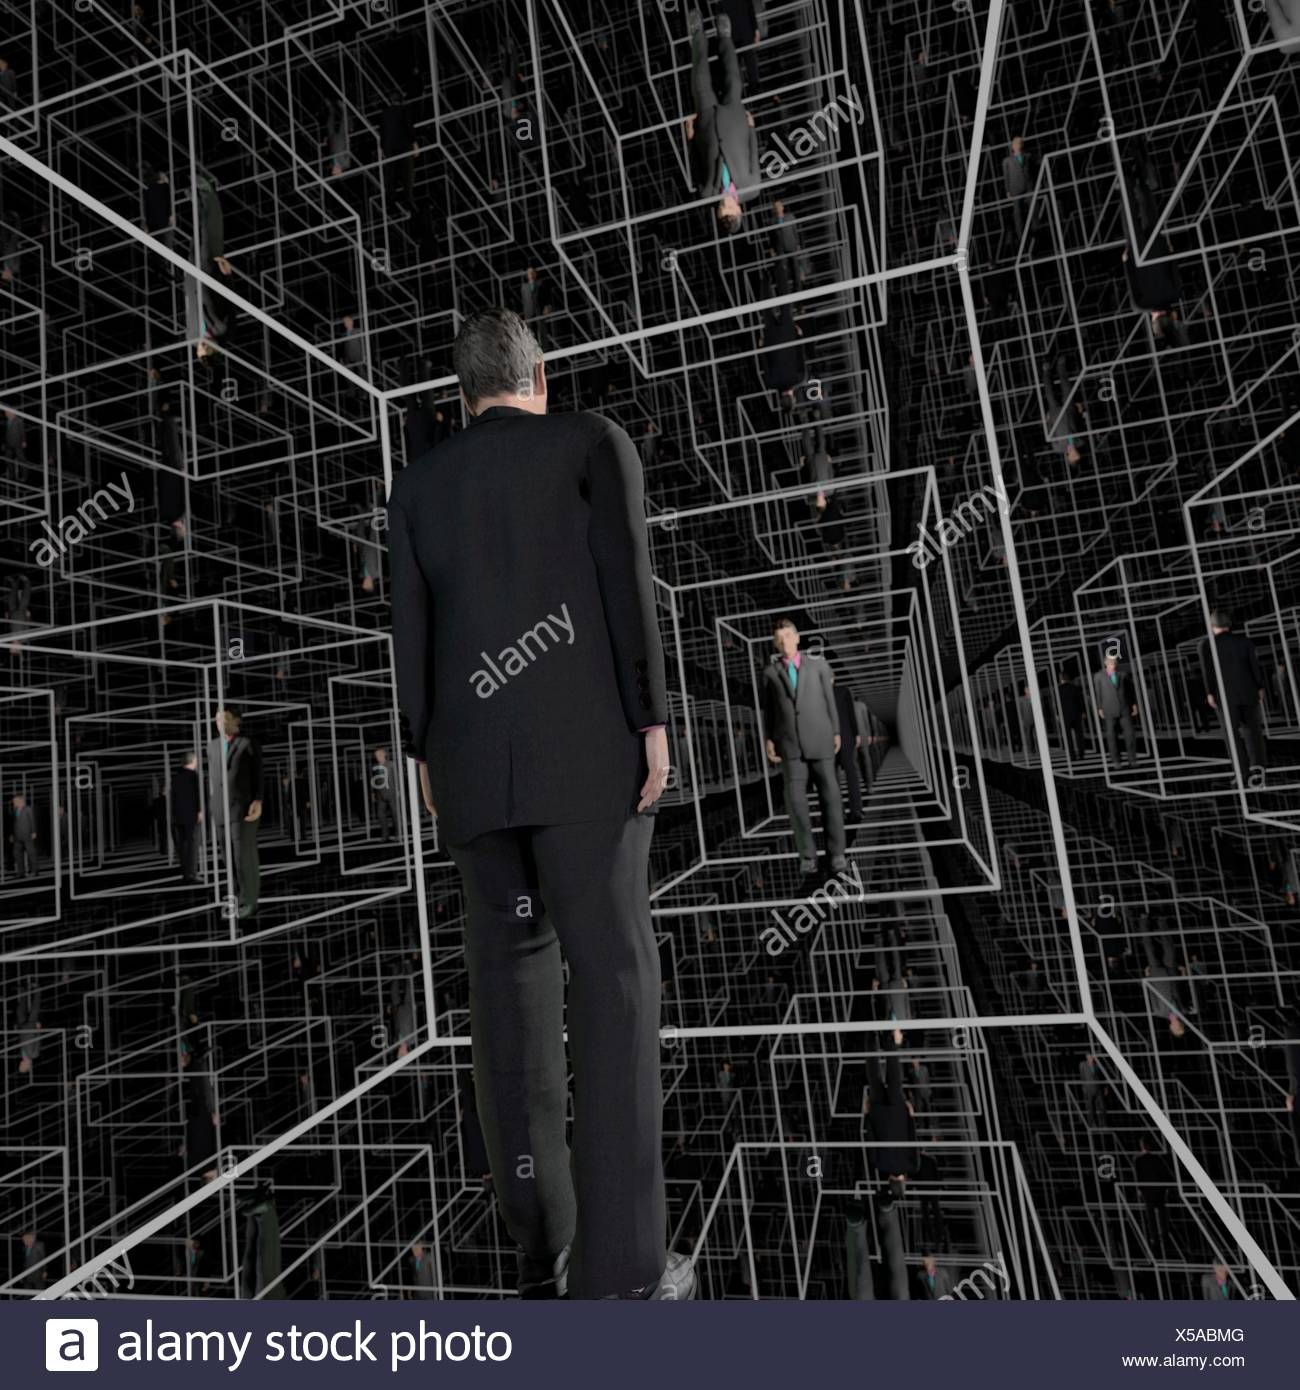 Identical men in a matrix-like structure of cubicles, seeming to be endless. Full CGI (including human figures) - Stock Image